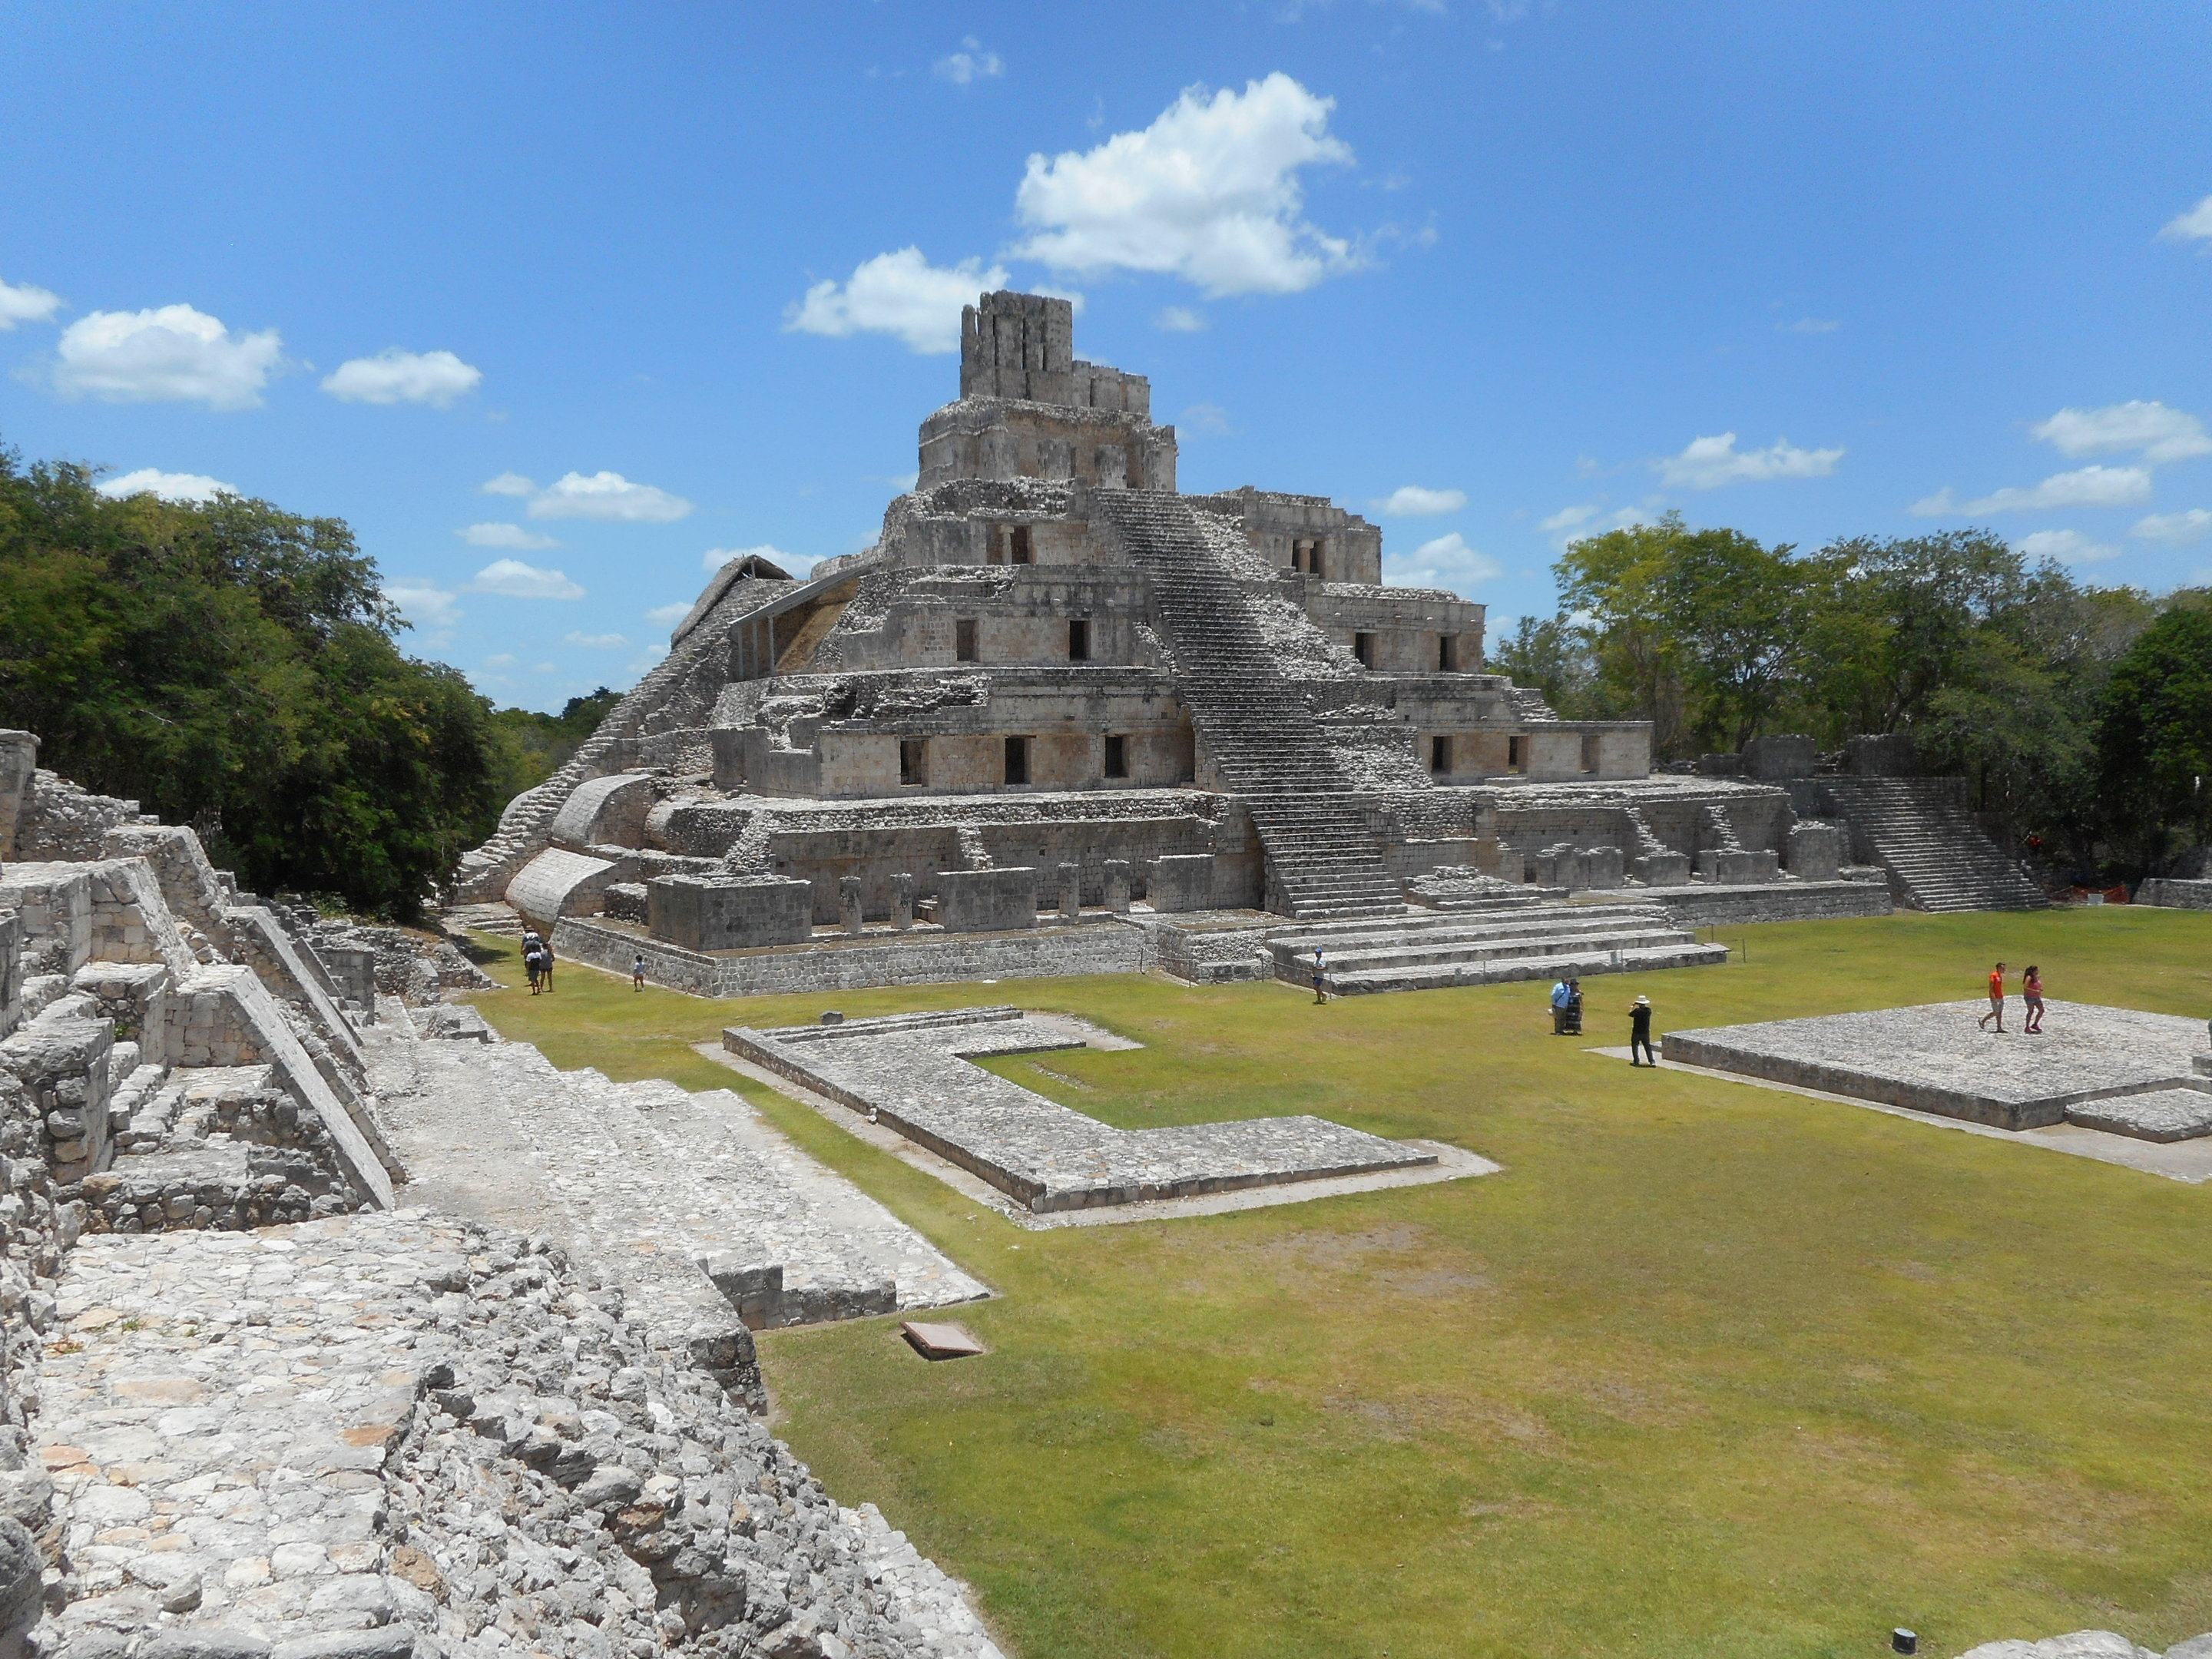 how was information passed down between generations of mayans